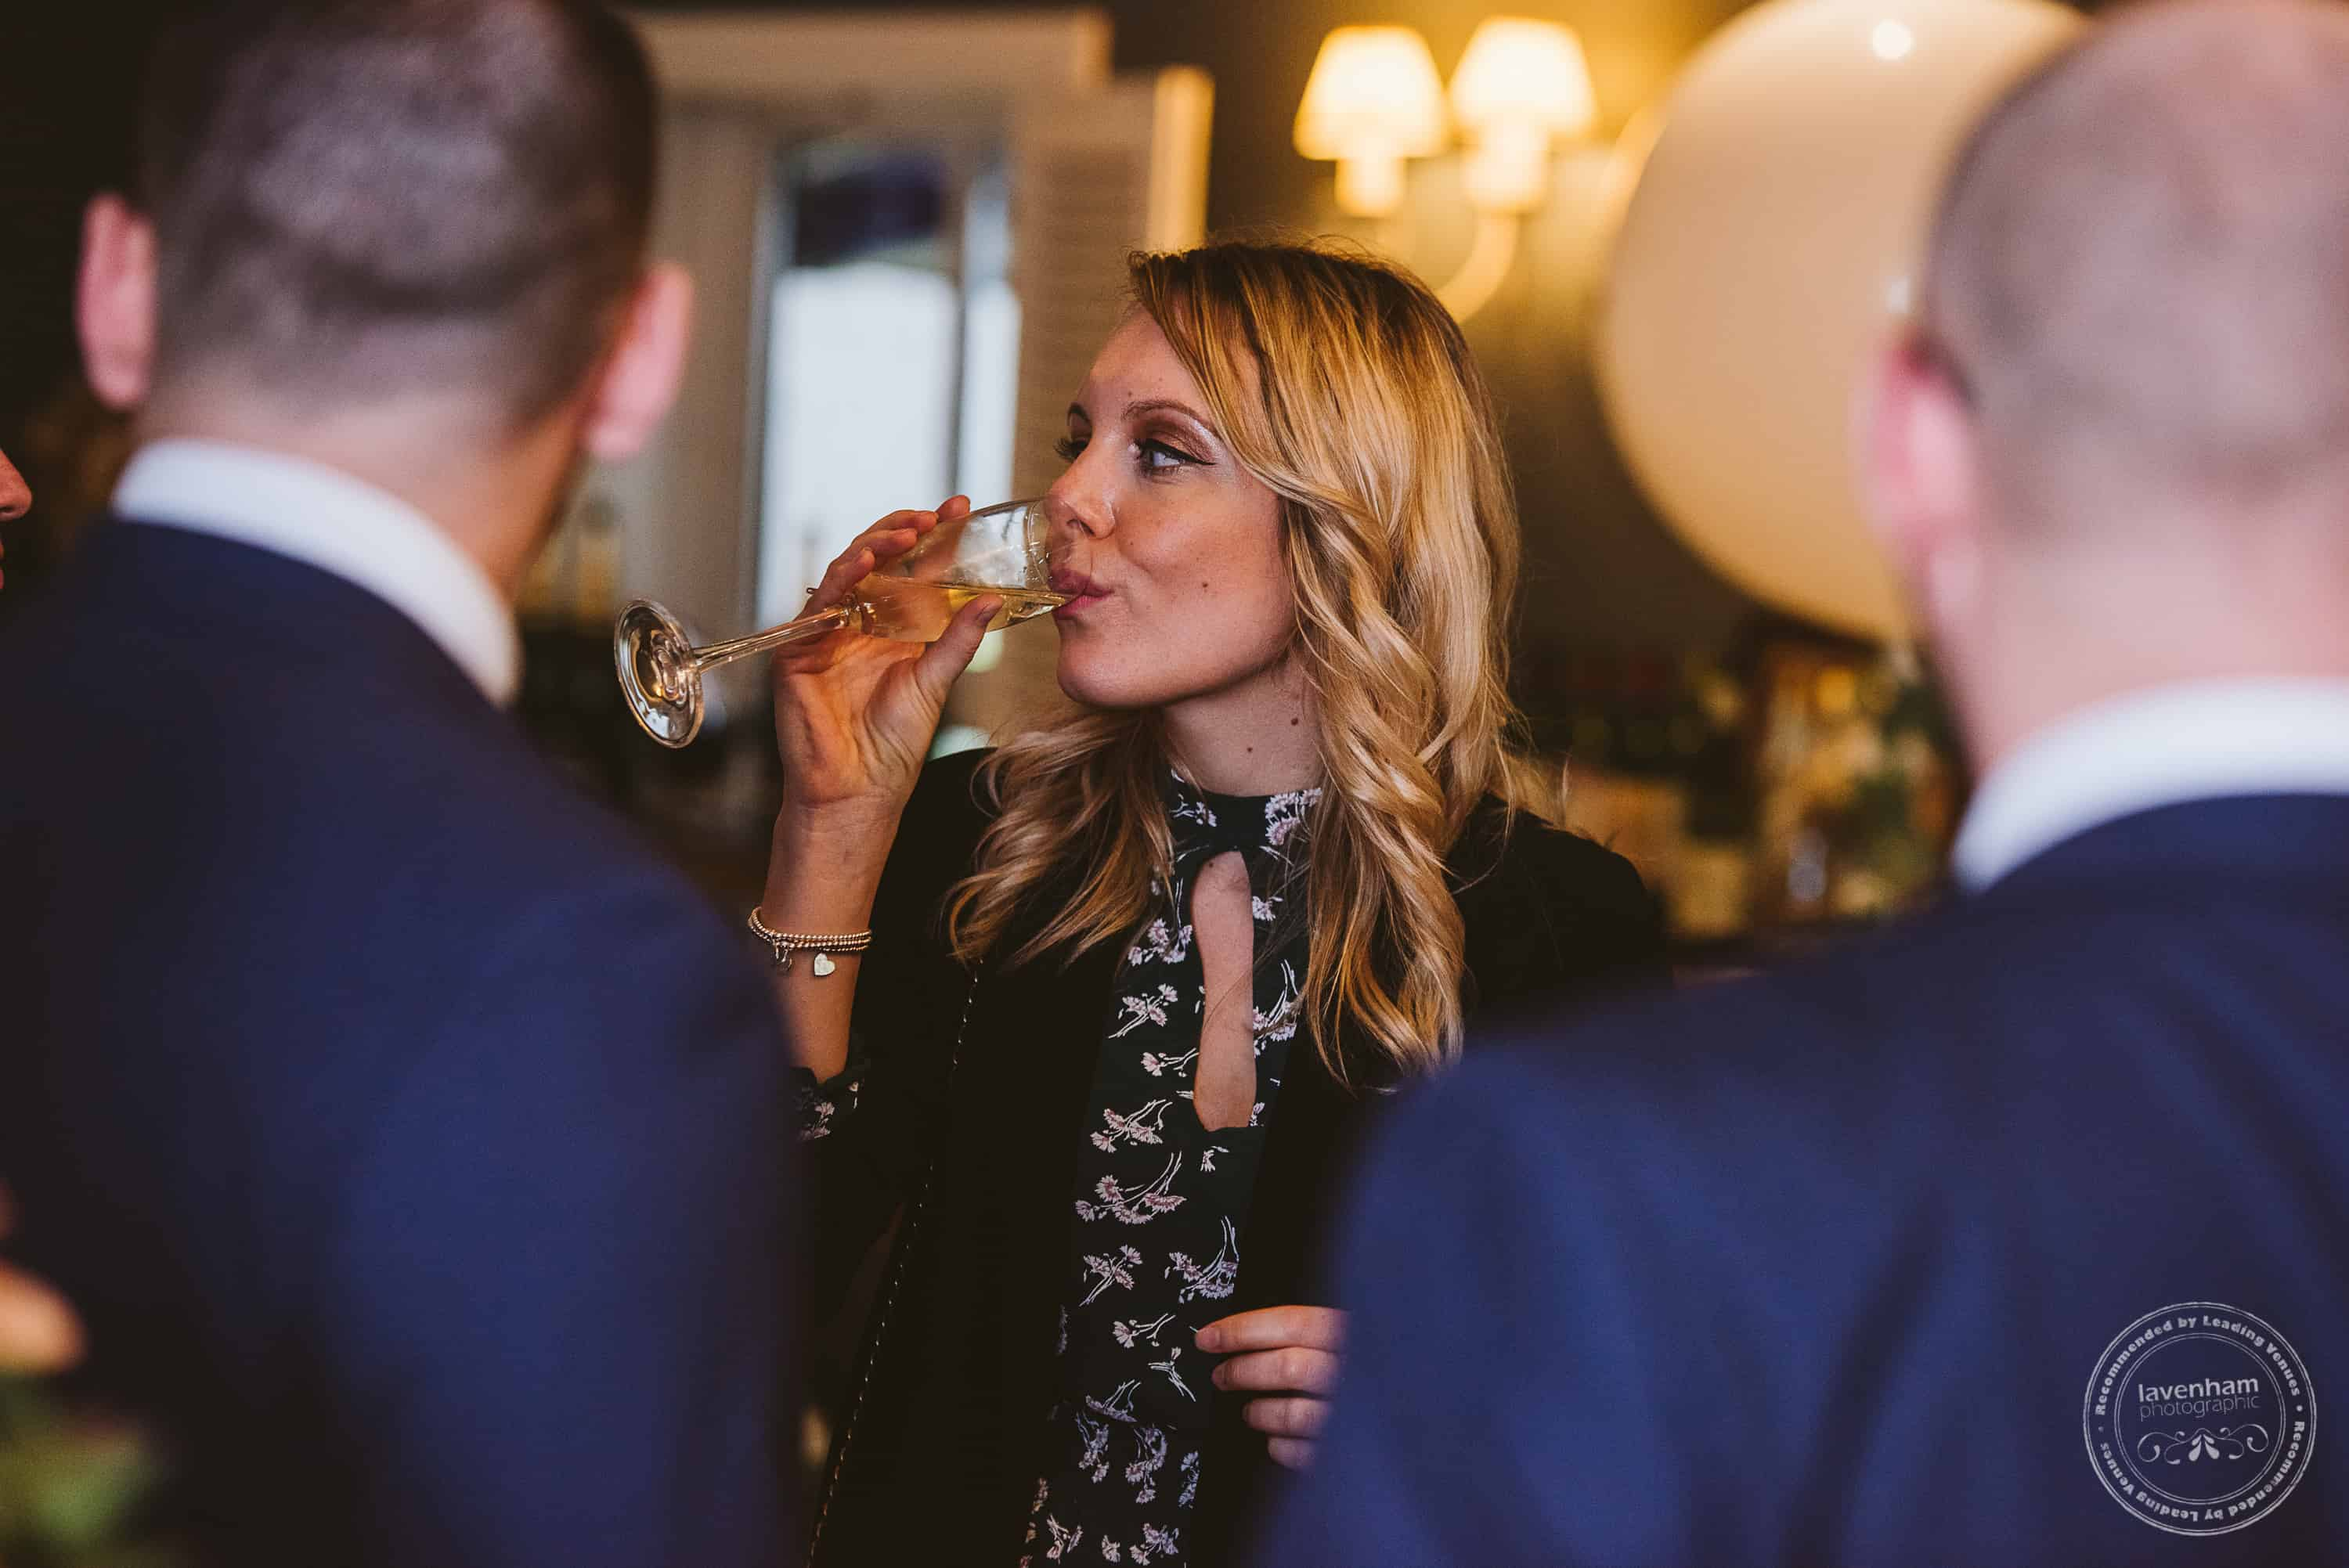 261019 Bull and Willow Room Essex Wedding Photographer 049